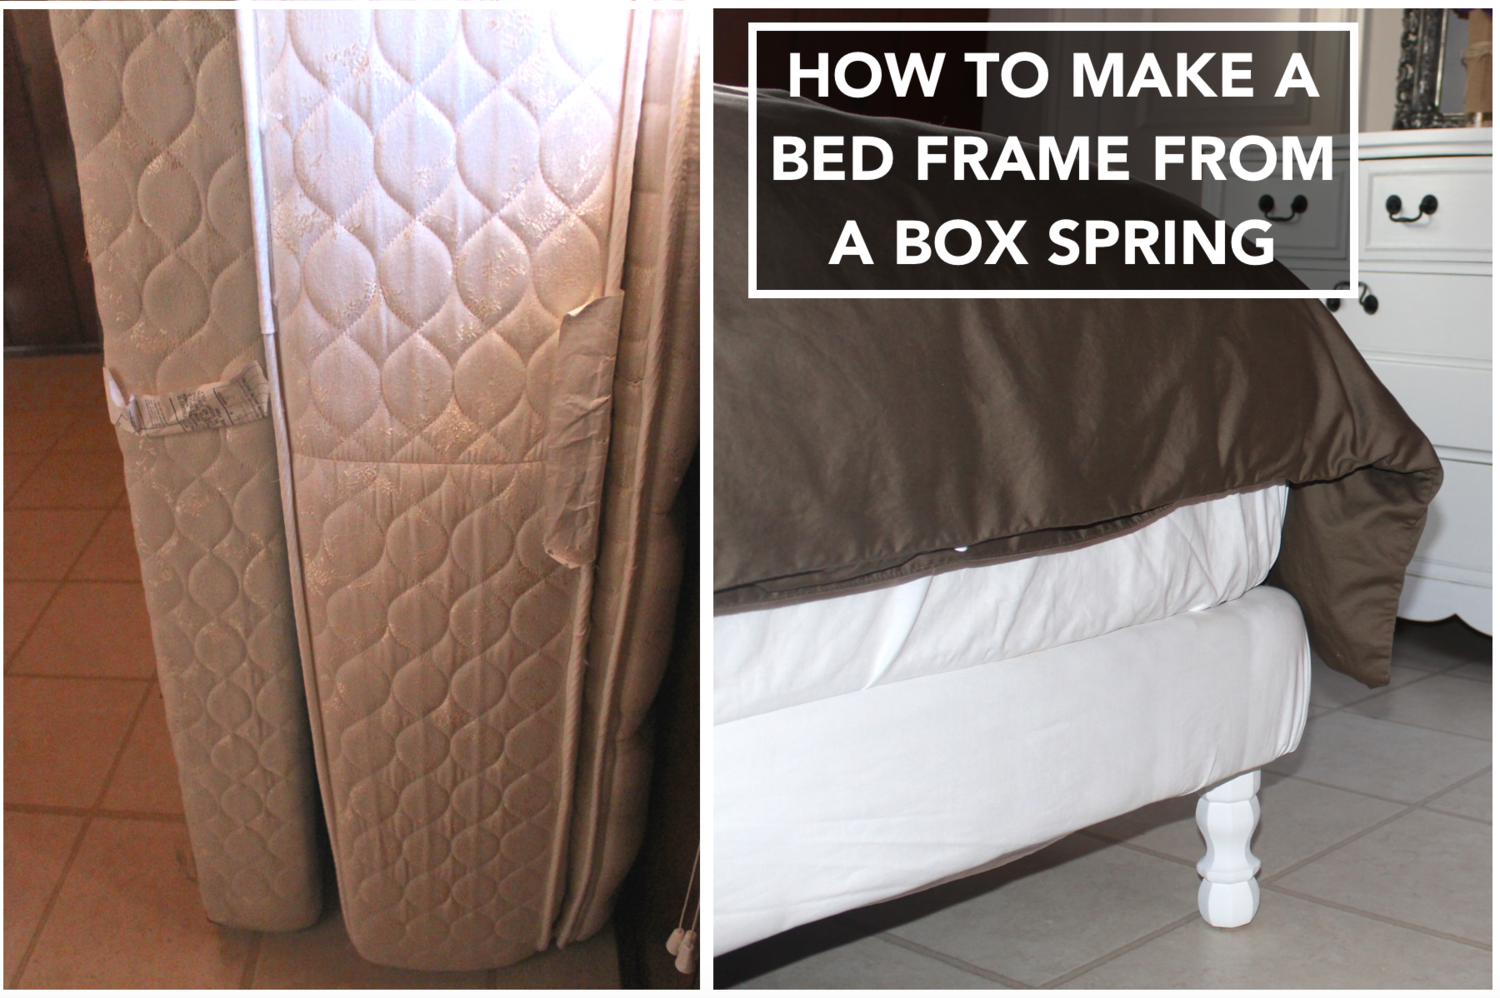 How To Make A Bed Frame From A Box Spring Making A Bed Frame Box Spring Bed Frame How To Make Bed